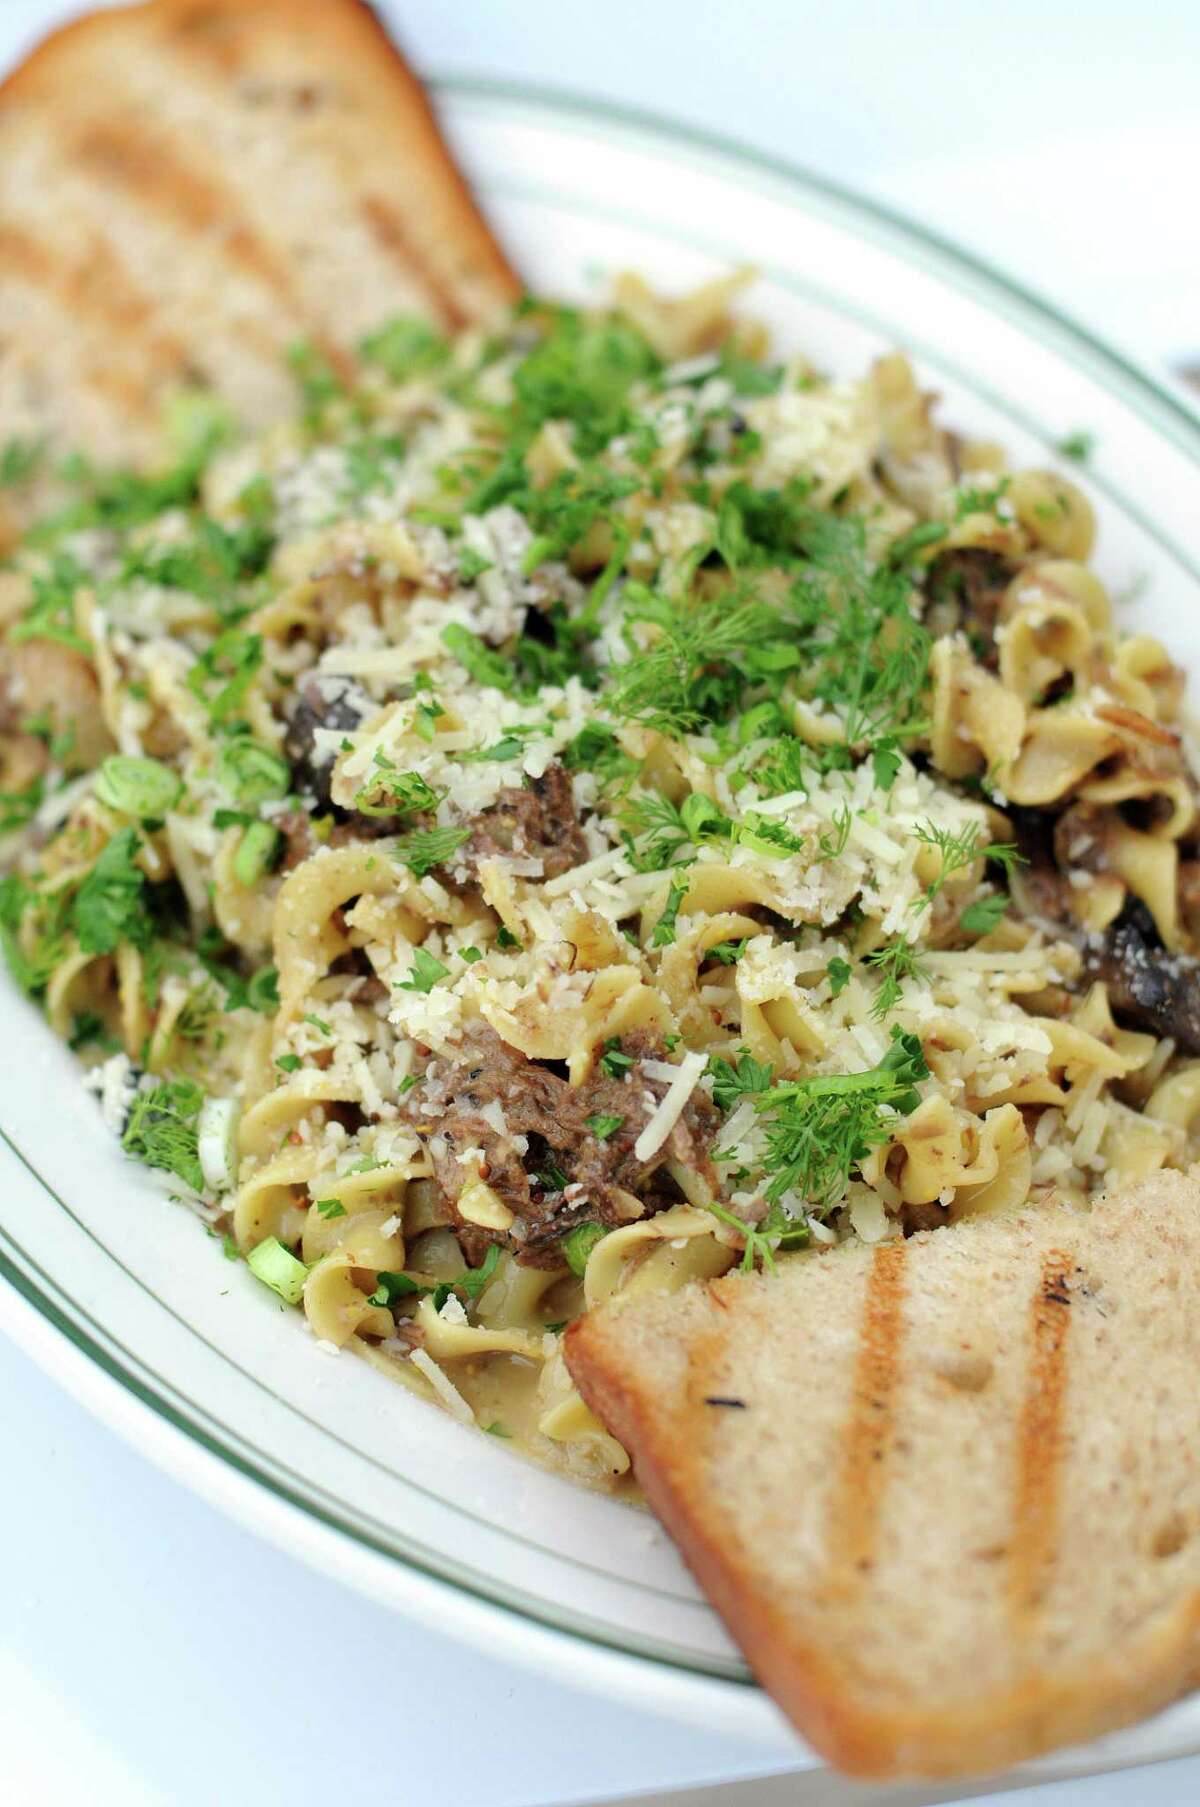 The barbacoa Stroganoff at The Hayden combines slow-braised beef cheeks, egg noodles, mushrooms and peas in a creamy sauce topped with oodles of fresh dill.